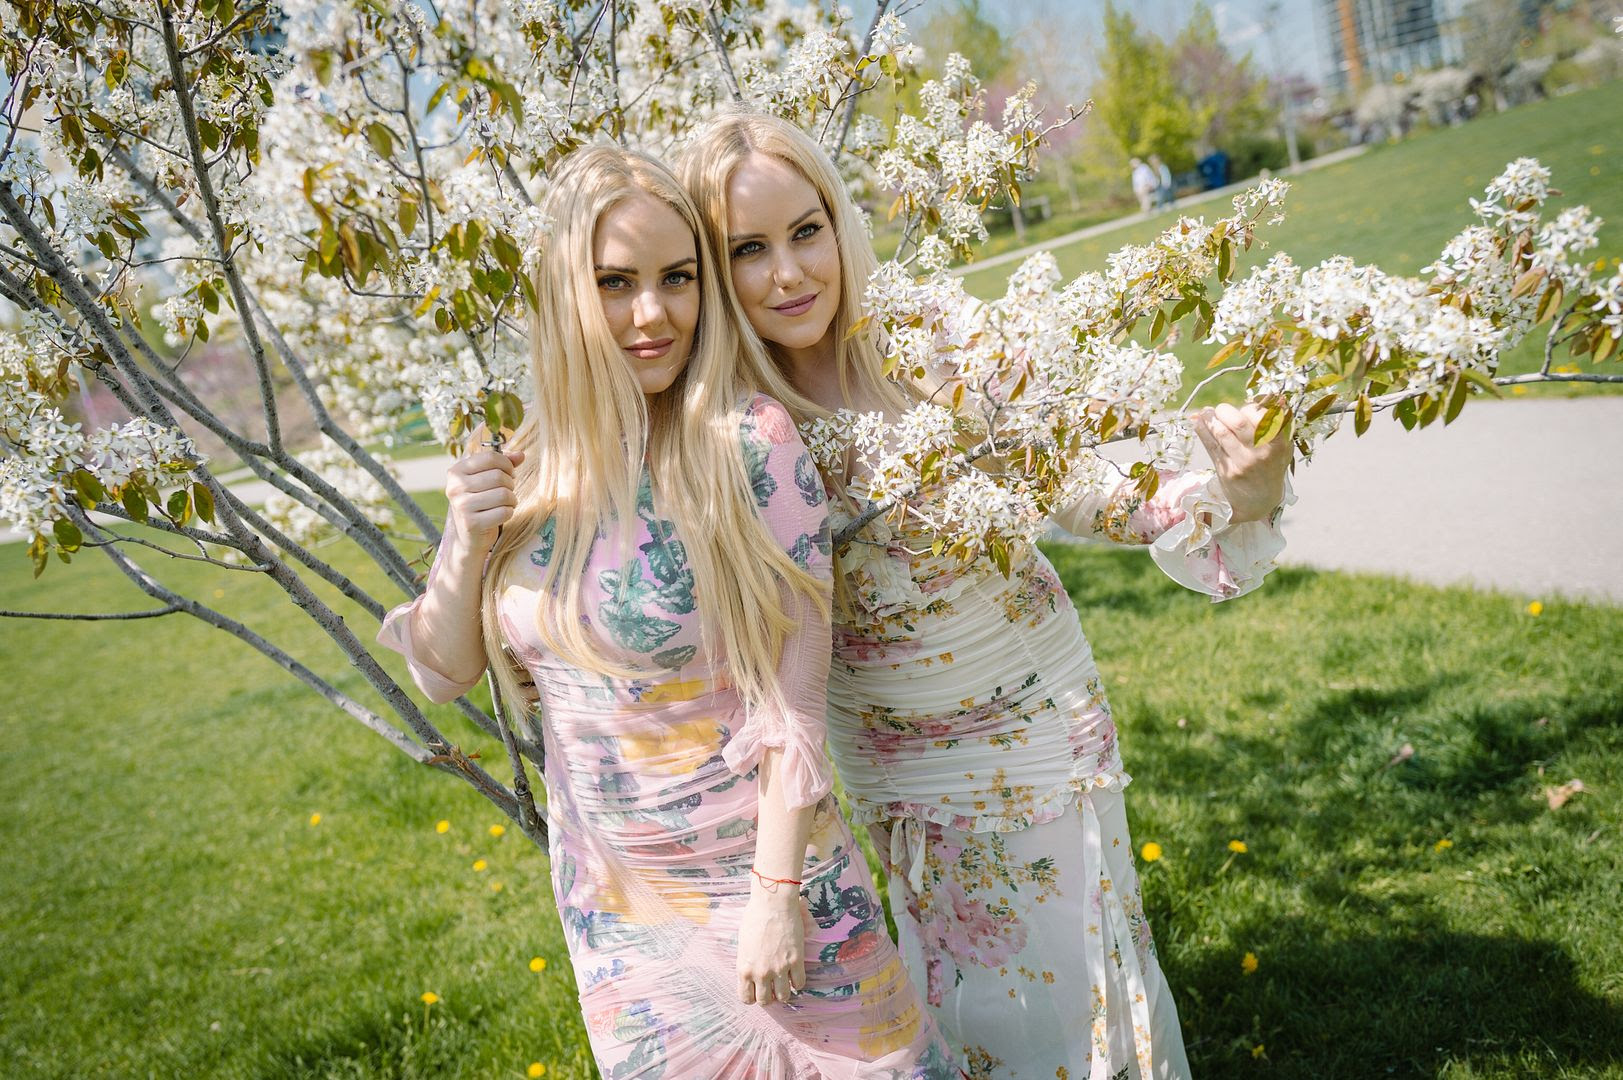 photo BeckermanBlog-1-Daniel Kim-Preen-Alessandra RIch- Flower dresses-beckerman twins-1_zps7sdjo0ti.jpg